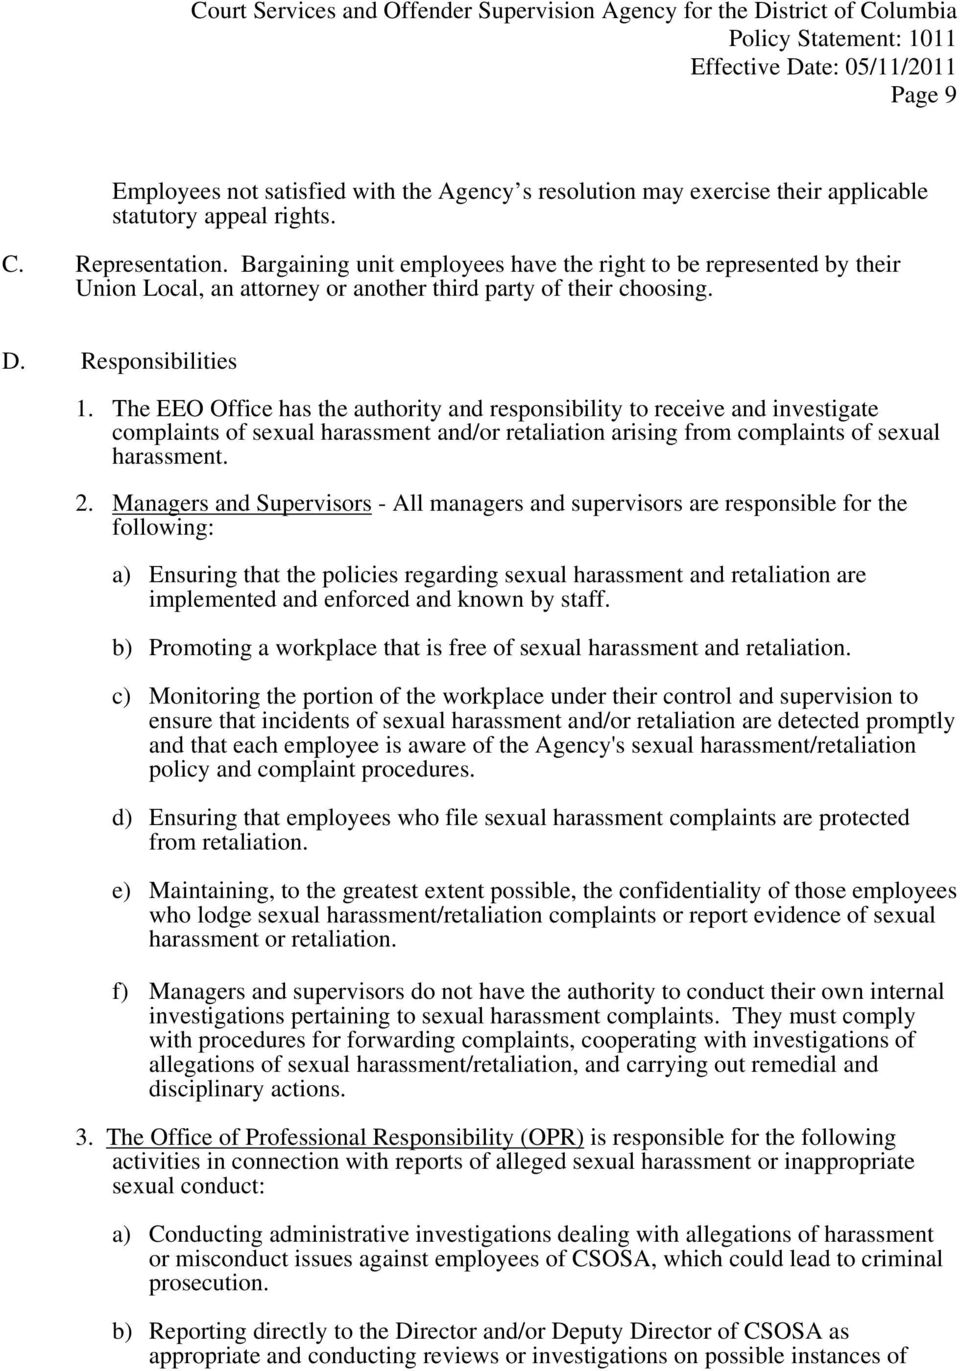 The EEO Office has the authority and responsibility to receive and investigate complaints of sexual harassment and/or retaliation arising from complaints of sexual harassment. 2.